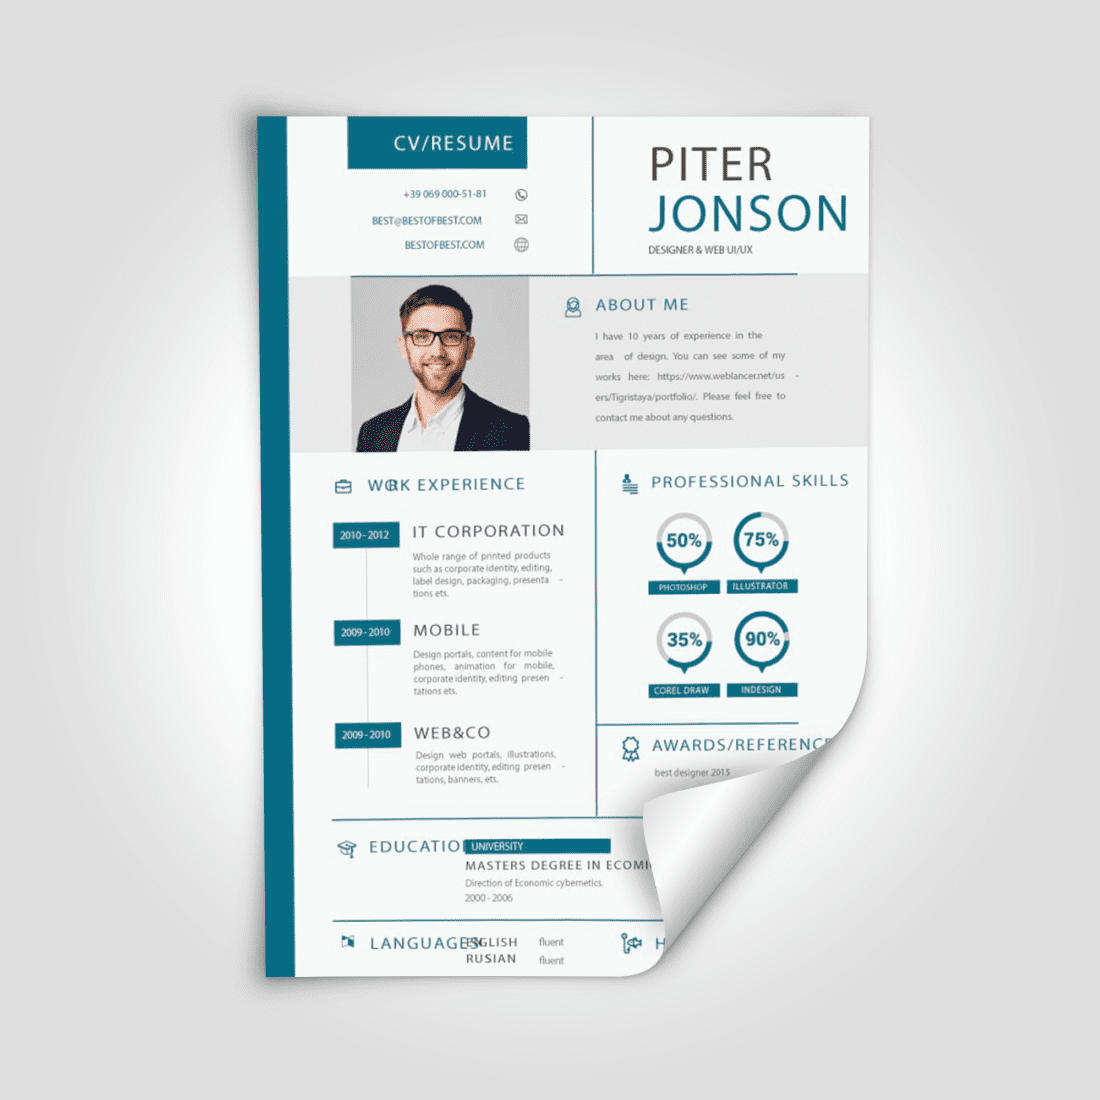 Best Grad Student Resume Templates. Second cover image.